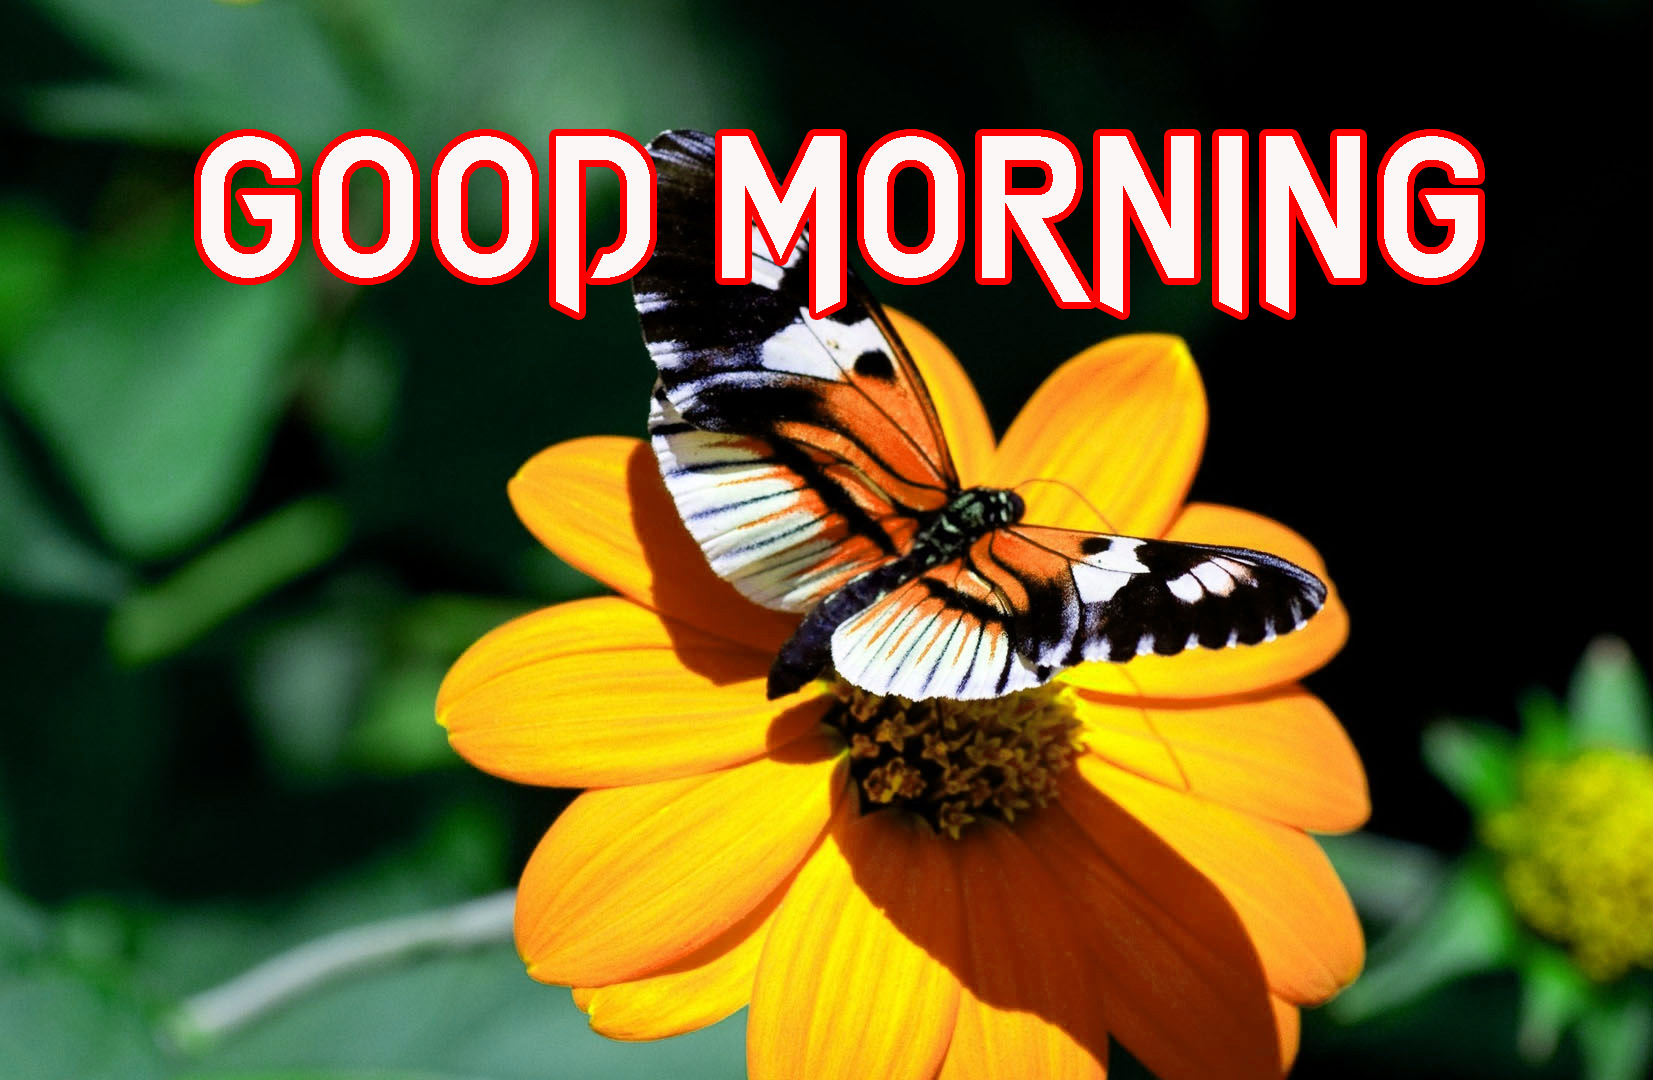 GOOD MORNING IMAGE PHOTO WALLPAPER DOWNLOAD